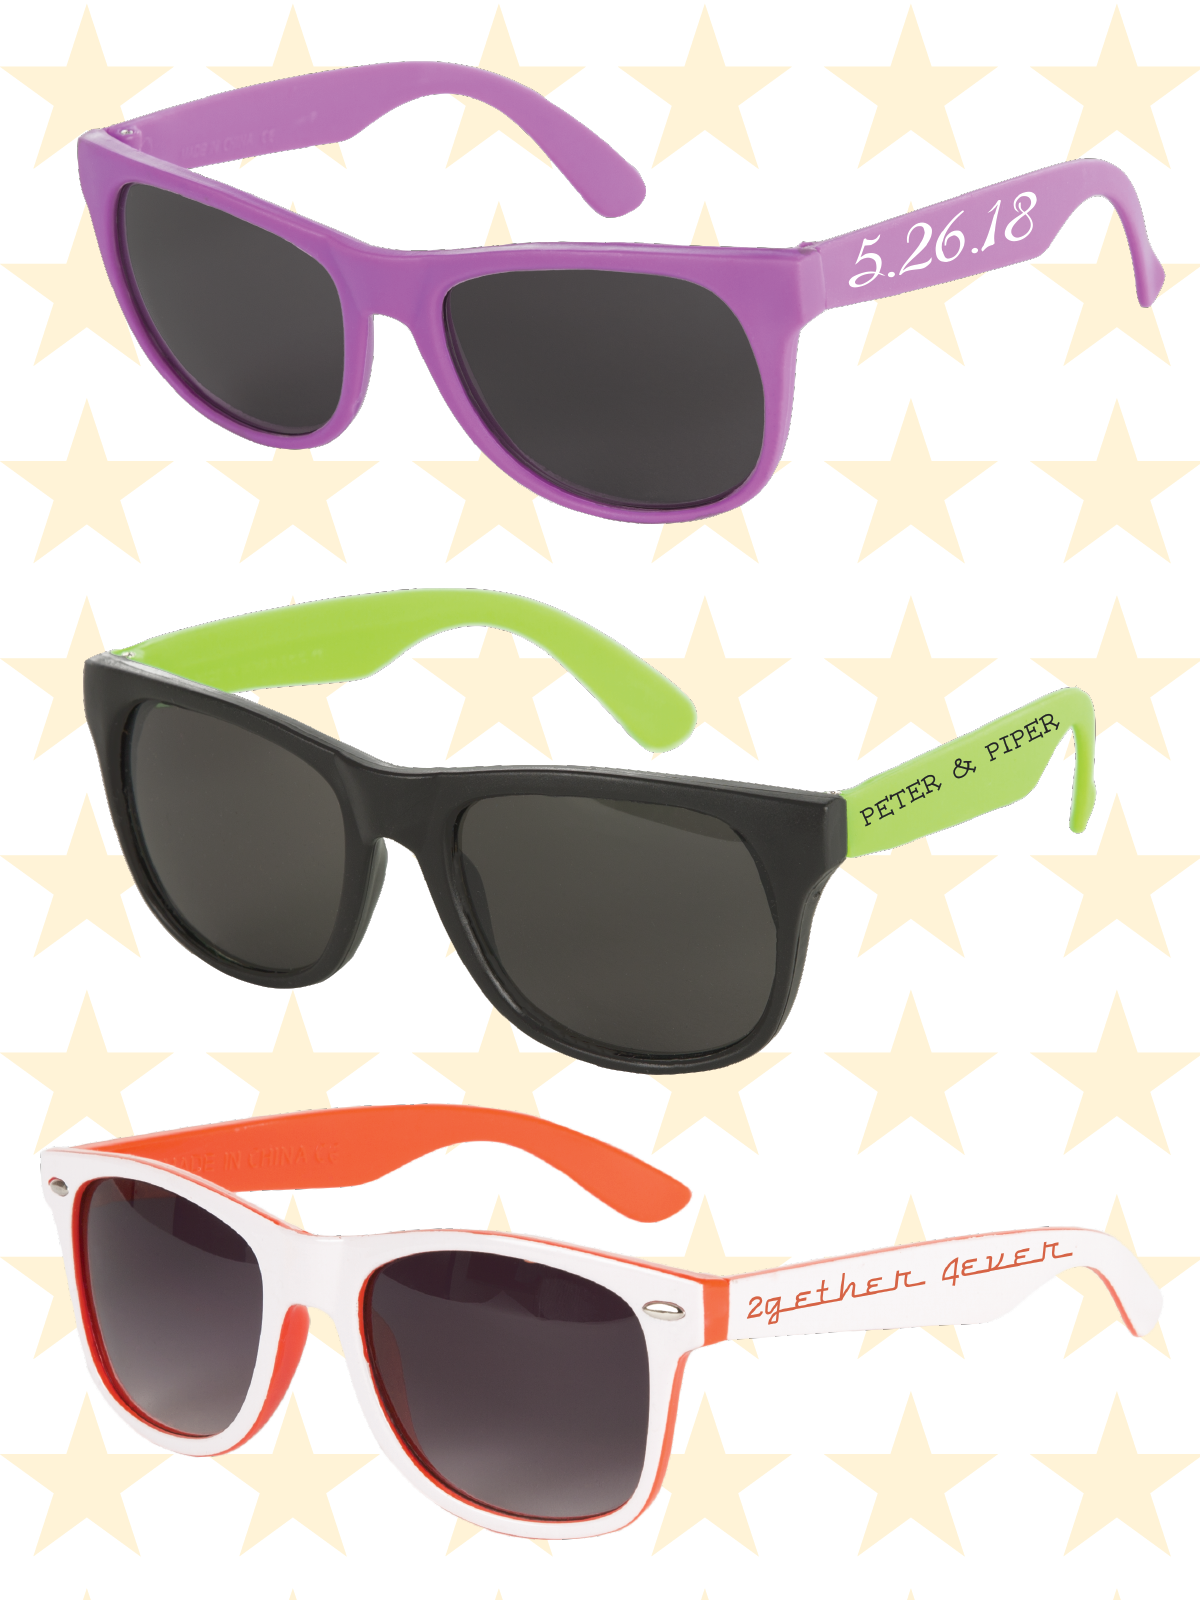 Custom sunglasses for wedding, wedding favor, bridal shower ...